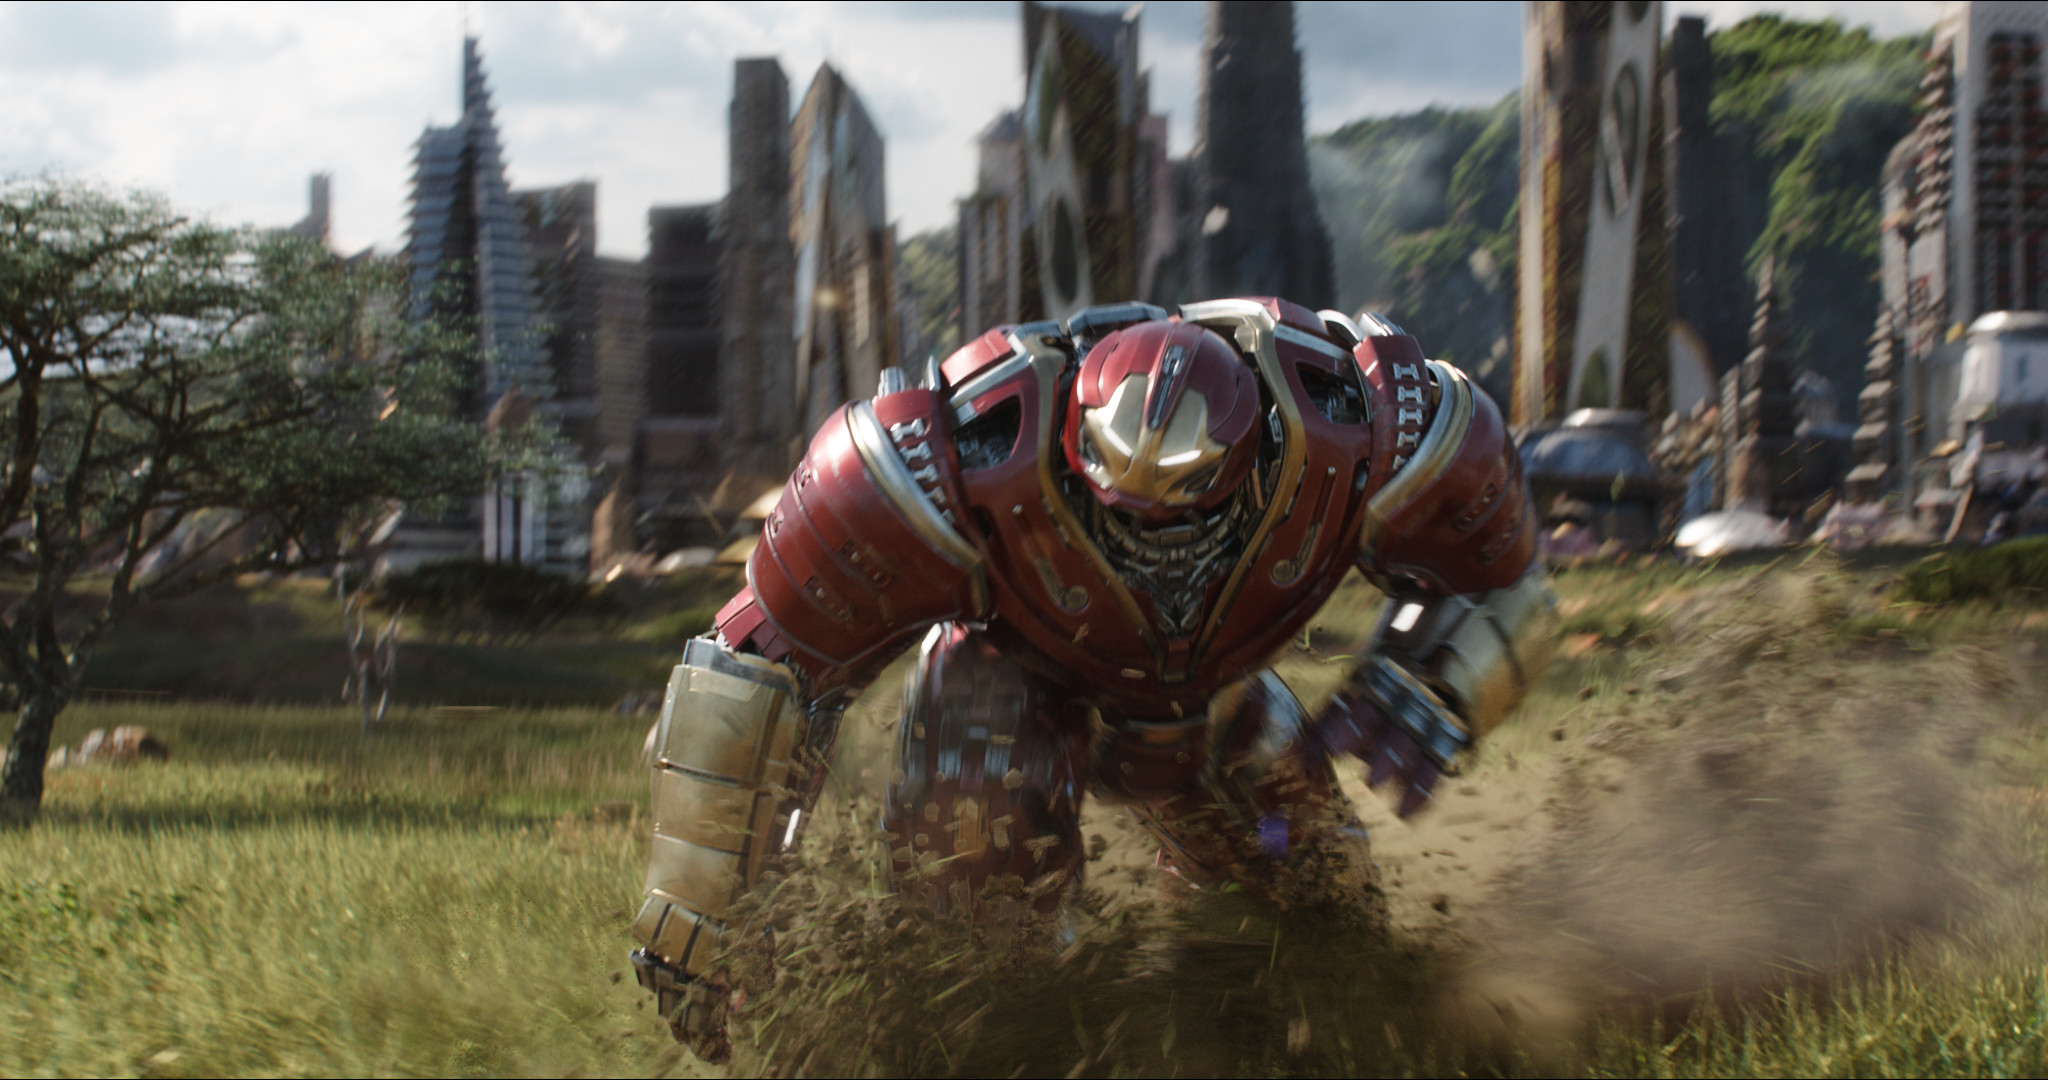 Res: 2048x1080, Filme - Avengers: Infinity War Robert Downey Jr. Iron Man Hulkbuster  Wallpaper